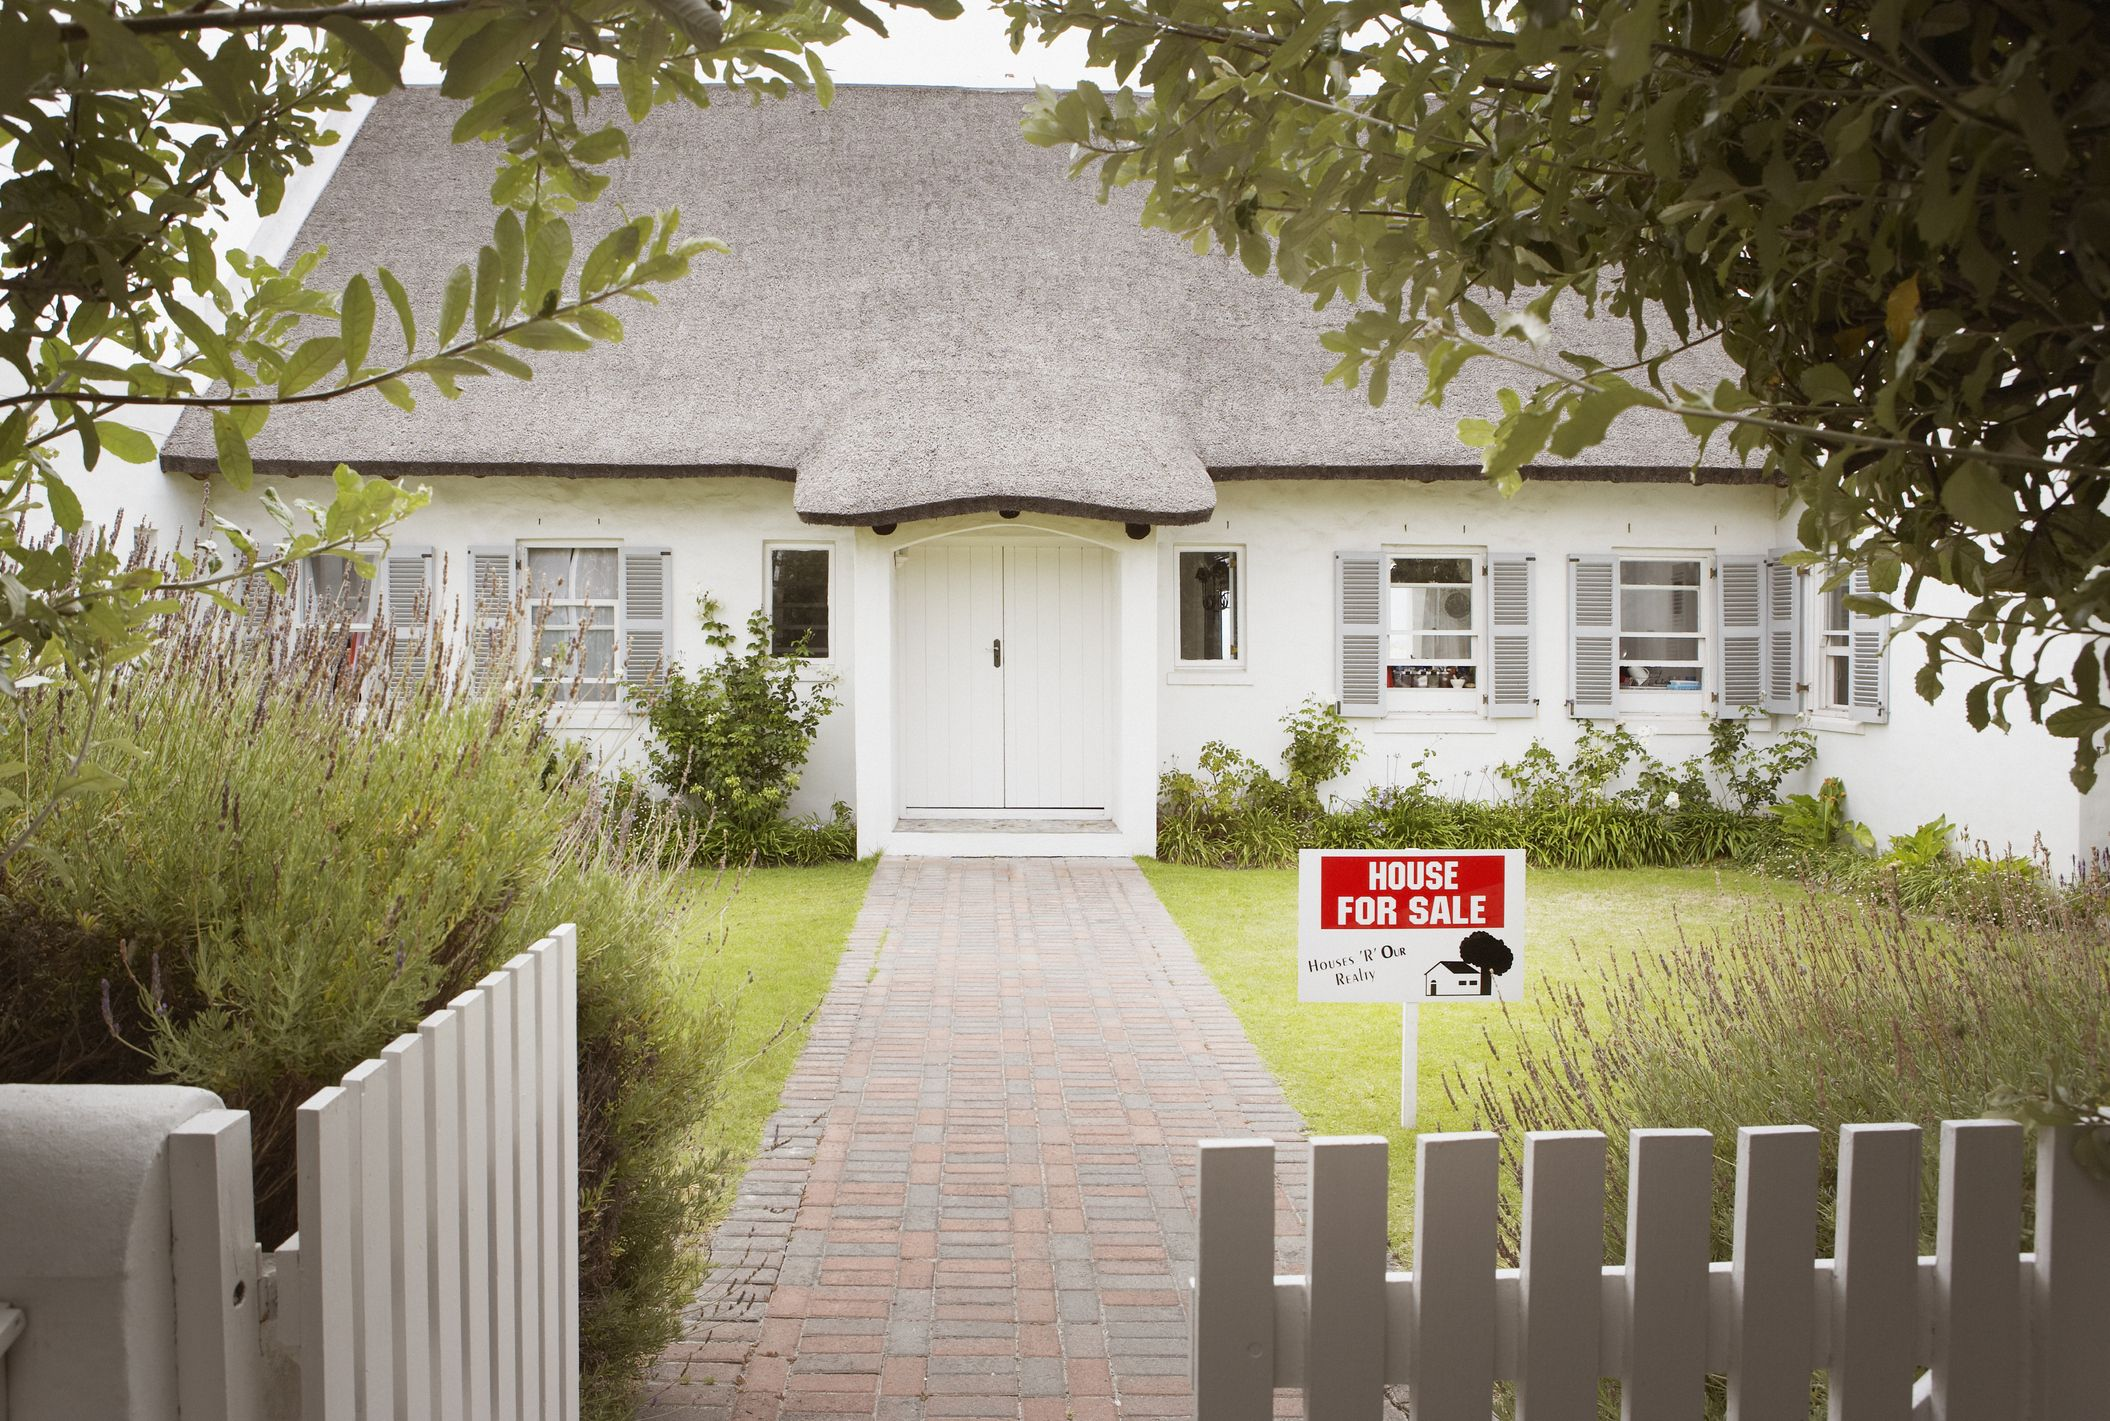 1 in 3 Americans Cry During the Home-Selling Process, and This Is Why